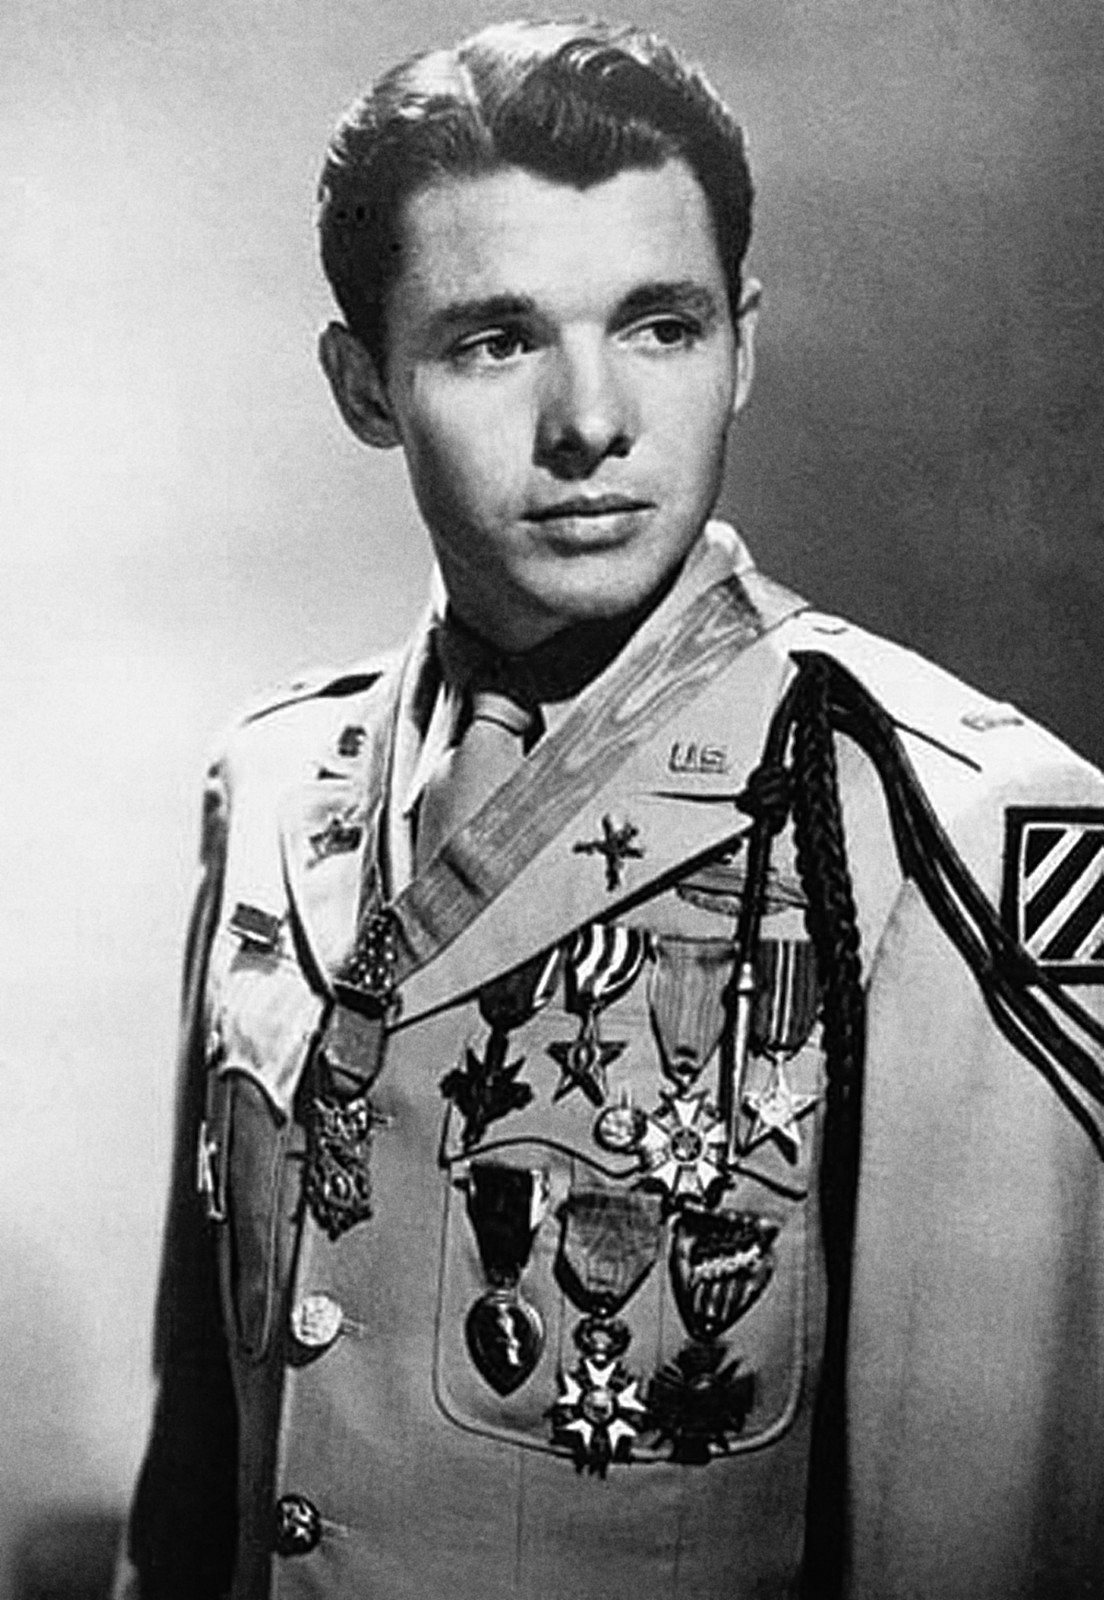 Episode one - Audie L. Murphy is one of the most decorated American soldiers of World War II. He served in the 3rd Infantry Division and fought in North Africa, Italy, France and Germany. He received the Medal of Honor for singlehandedly fighting back six German Tiger tanks. His story is here. Audie L. Murphy is buried in Section 46.